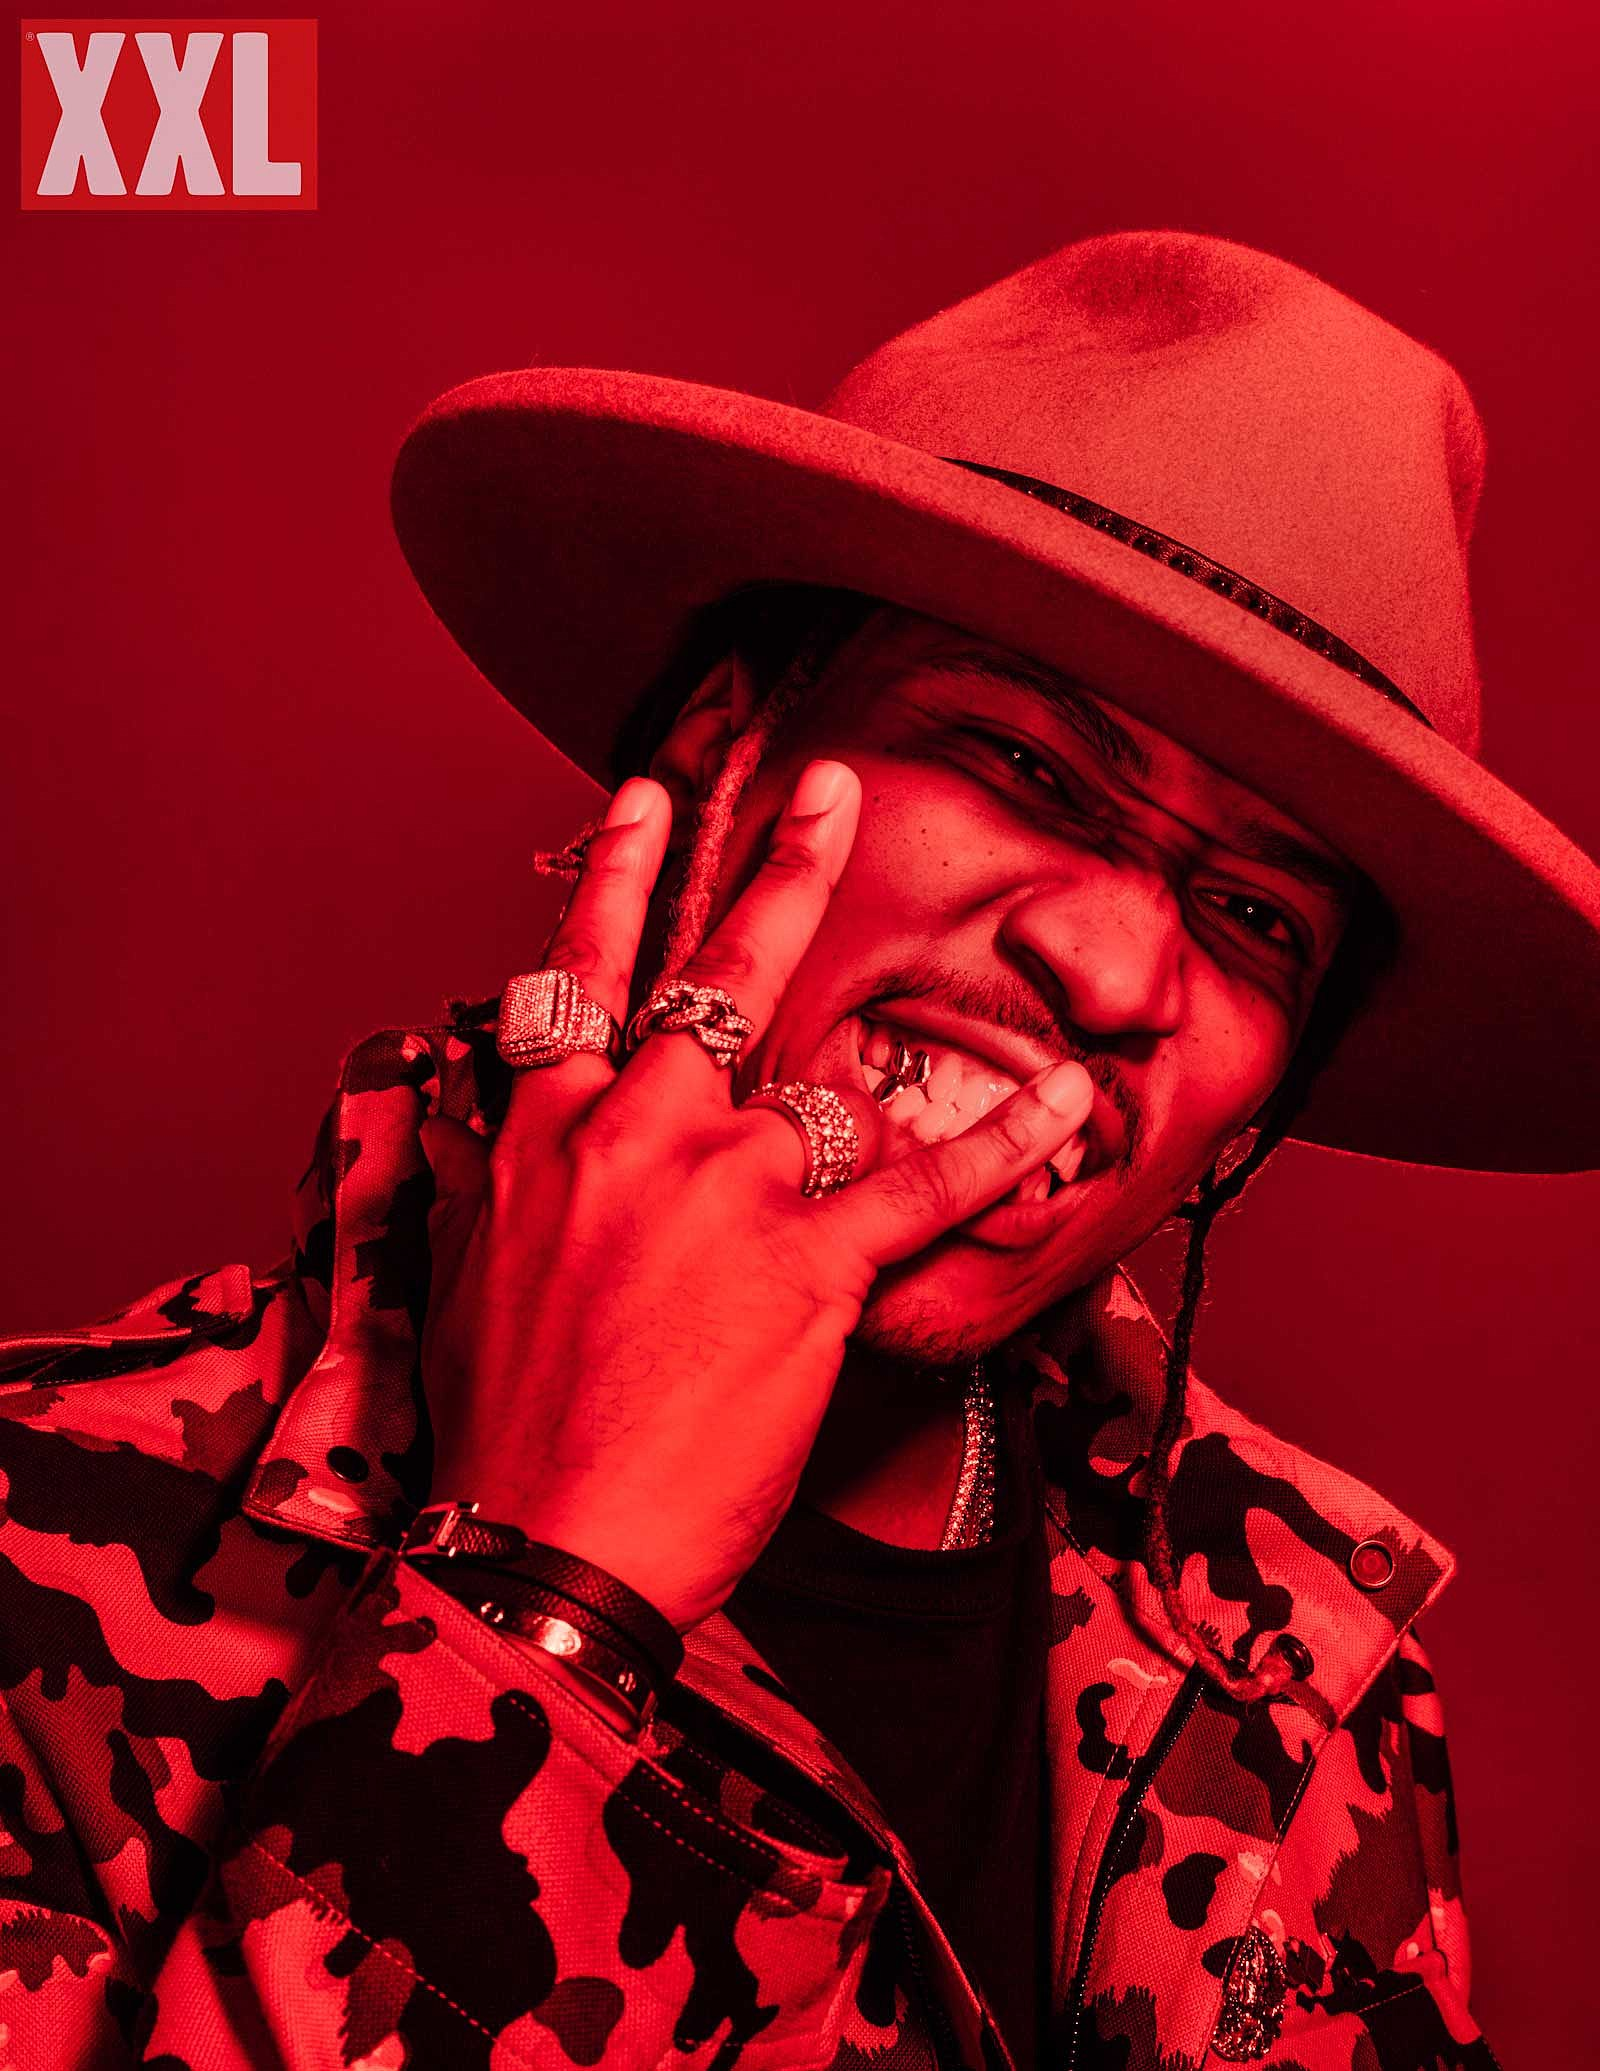 Behind-The-Scenes Future's XXL Cover Shoot rings